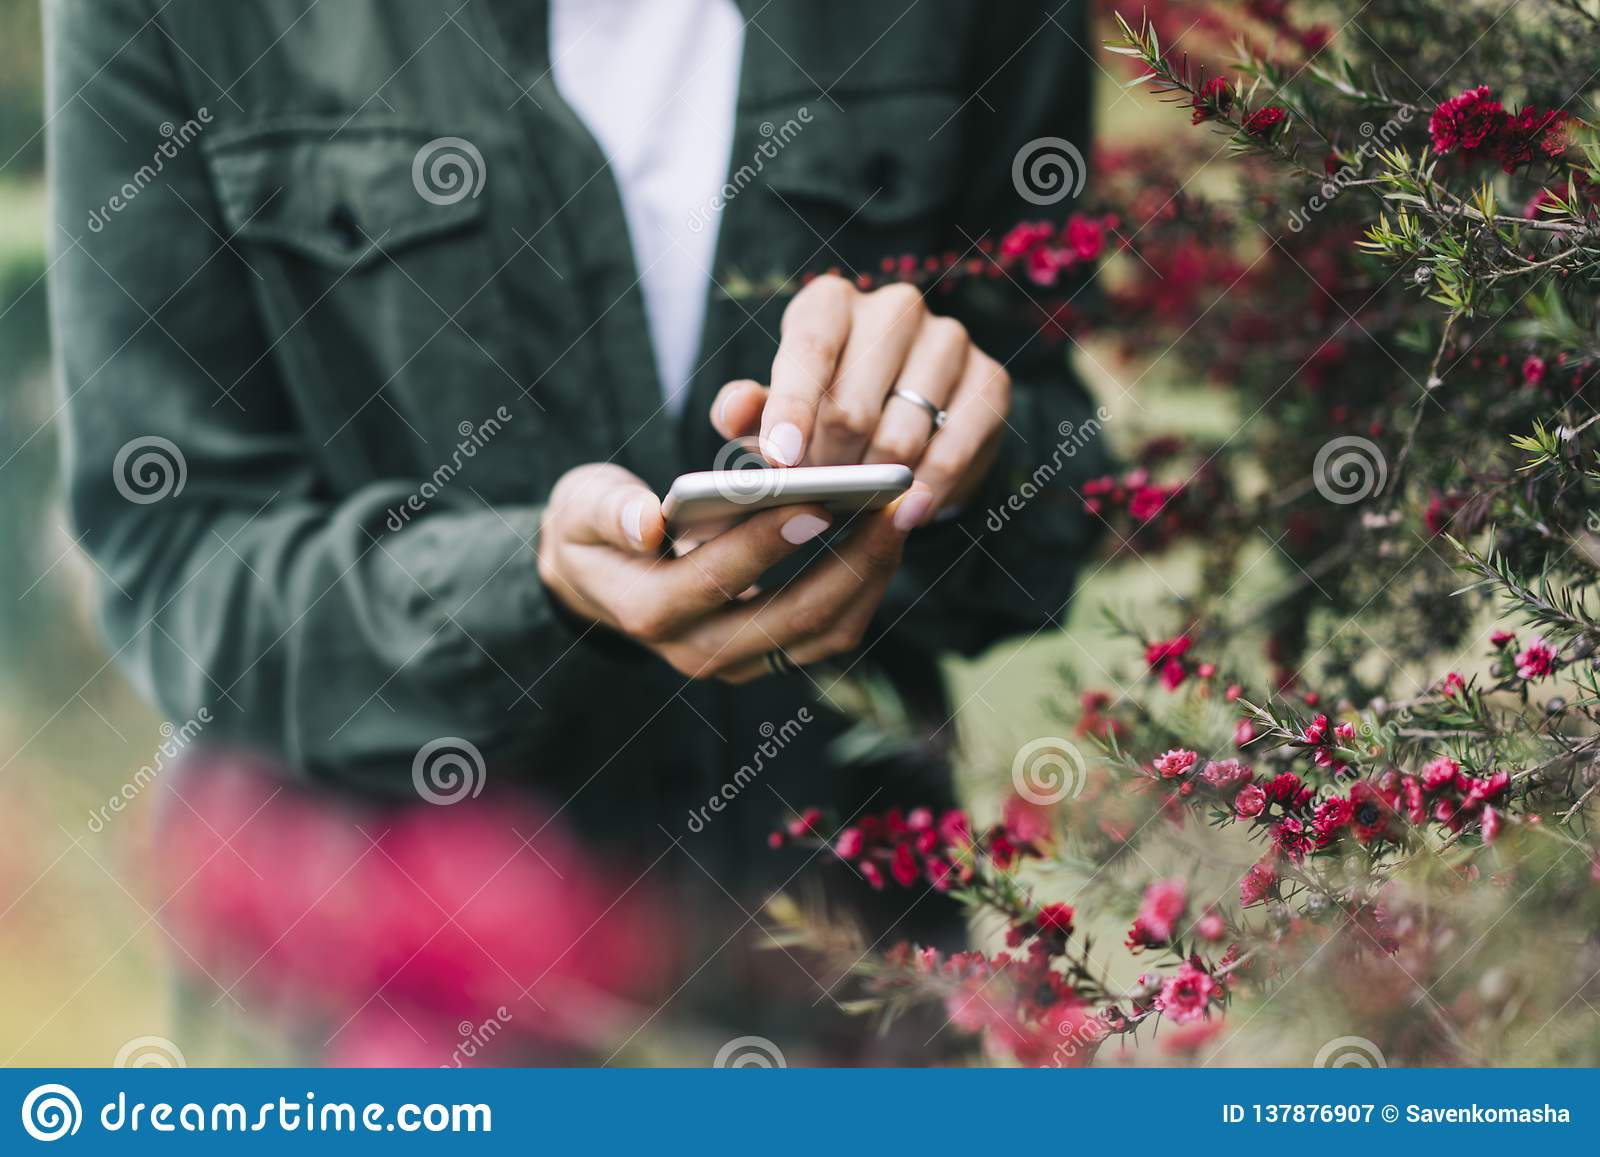 Hipster texting on smartphone or technology, mock up of blank screen. Girl using cellphone on red flowers background. Hands hold